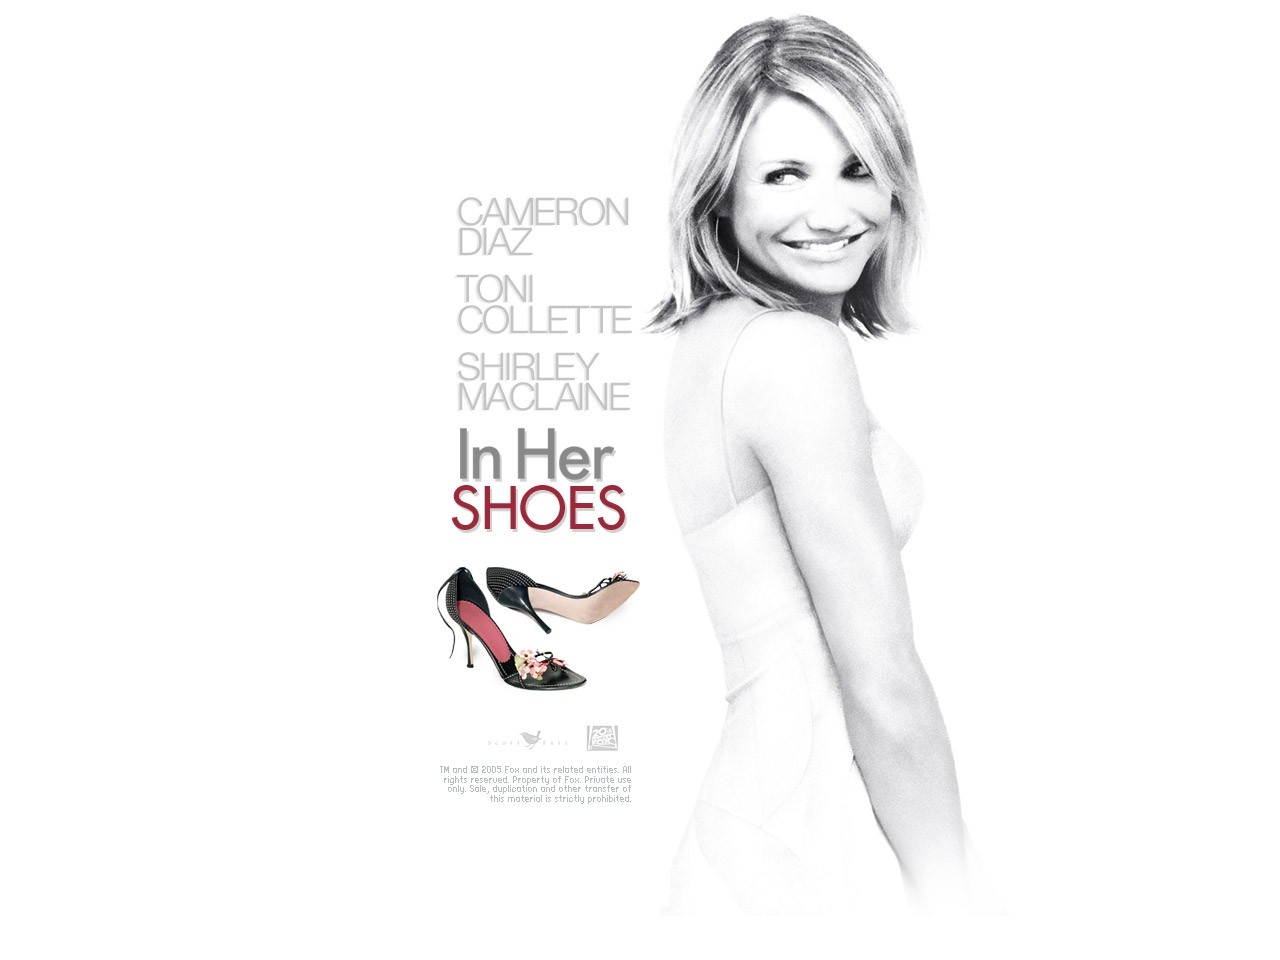 Wallpaper del film In Her Shoes - Se fossi lei